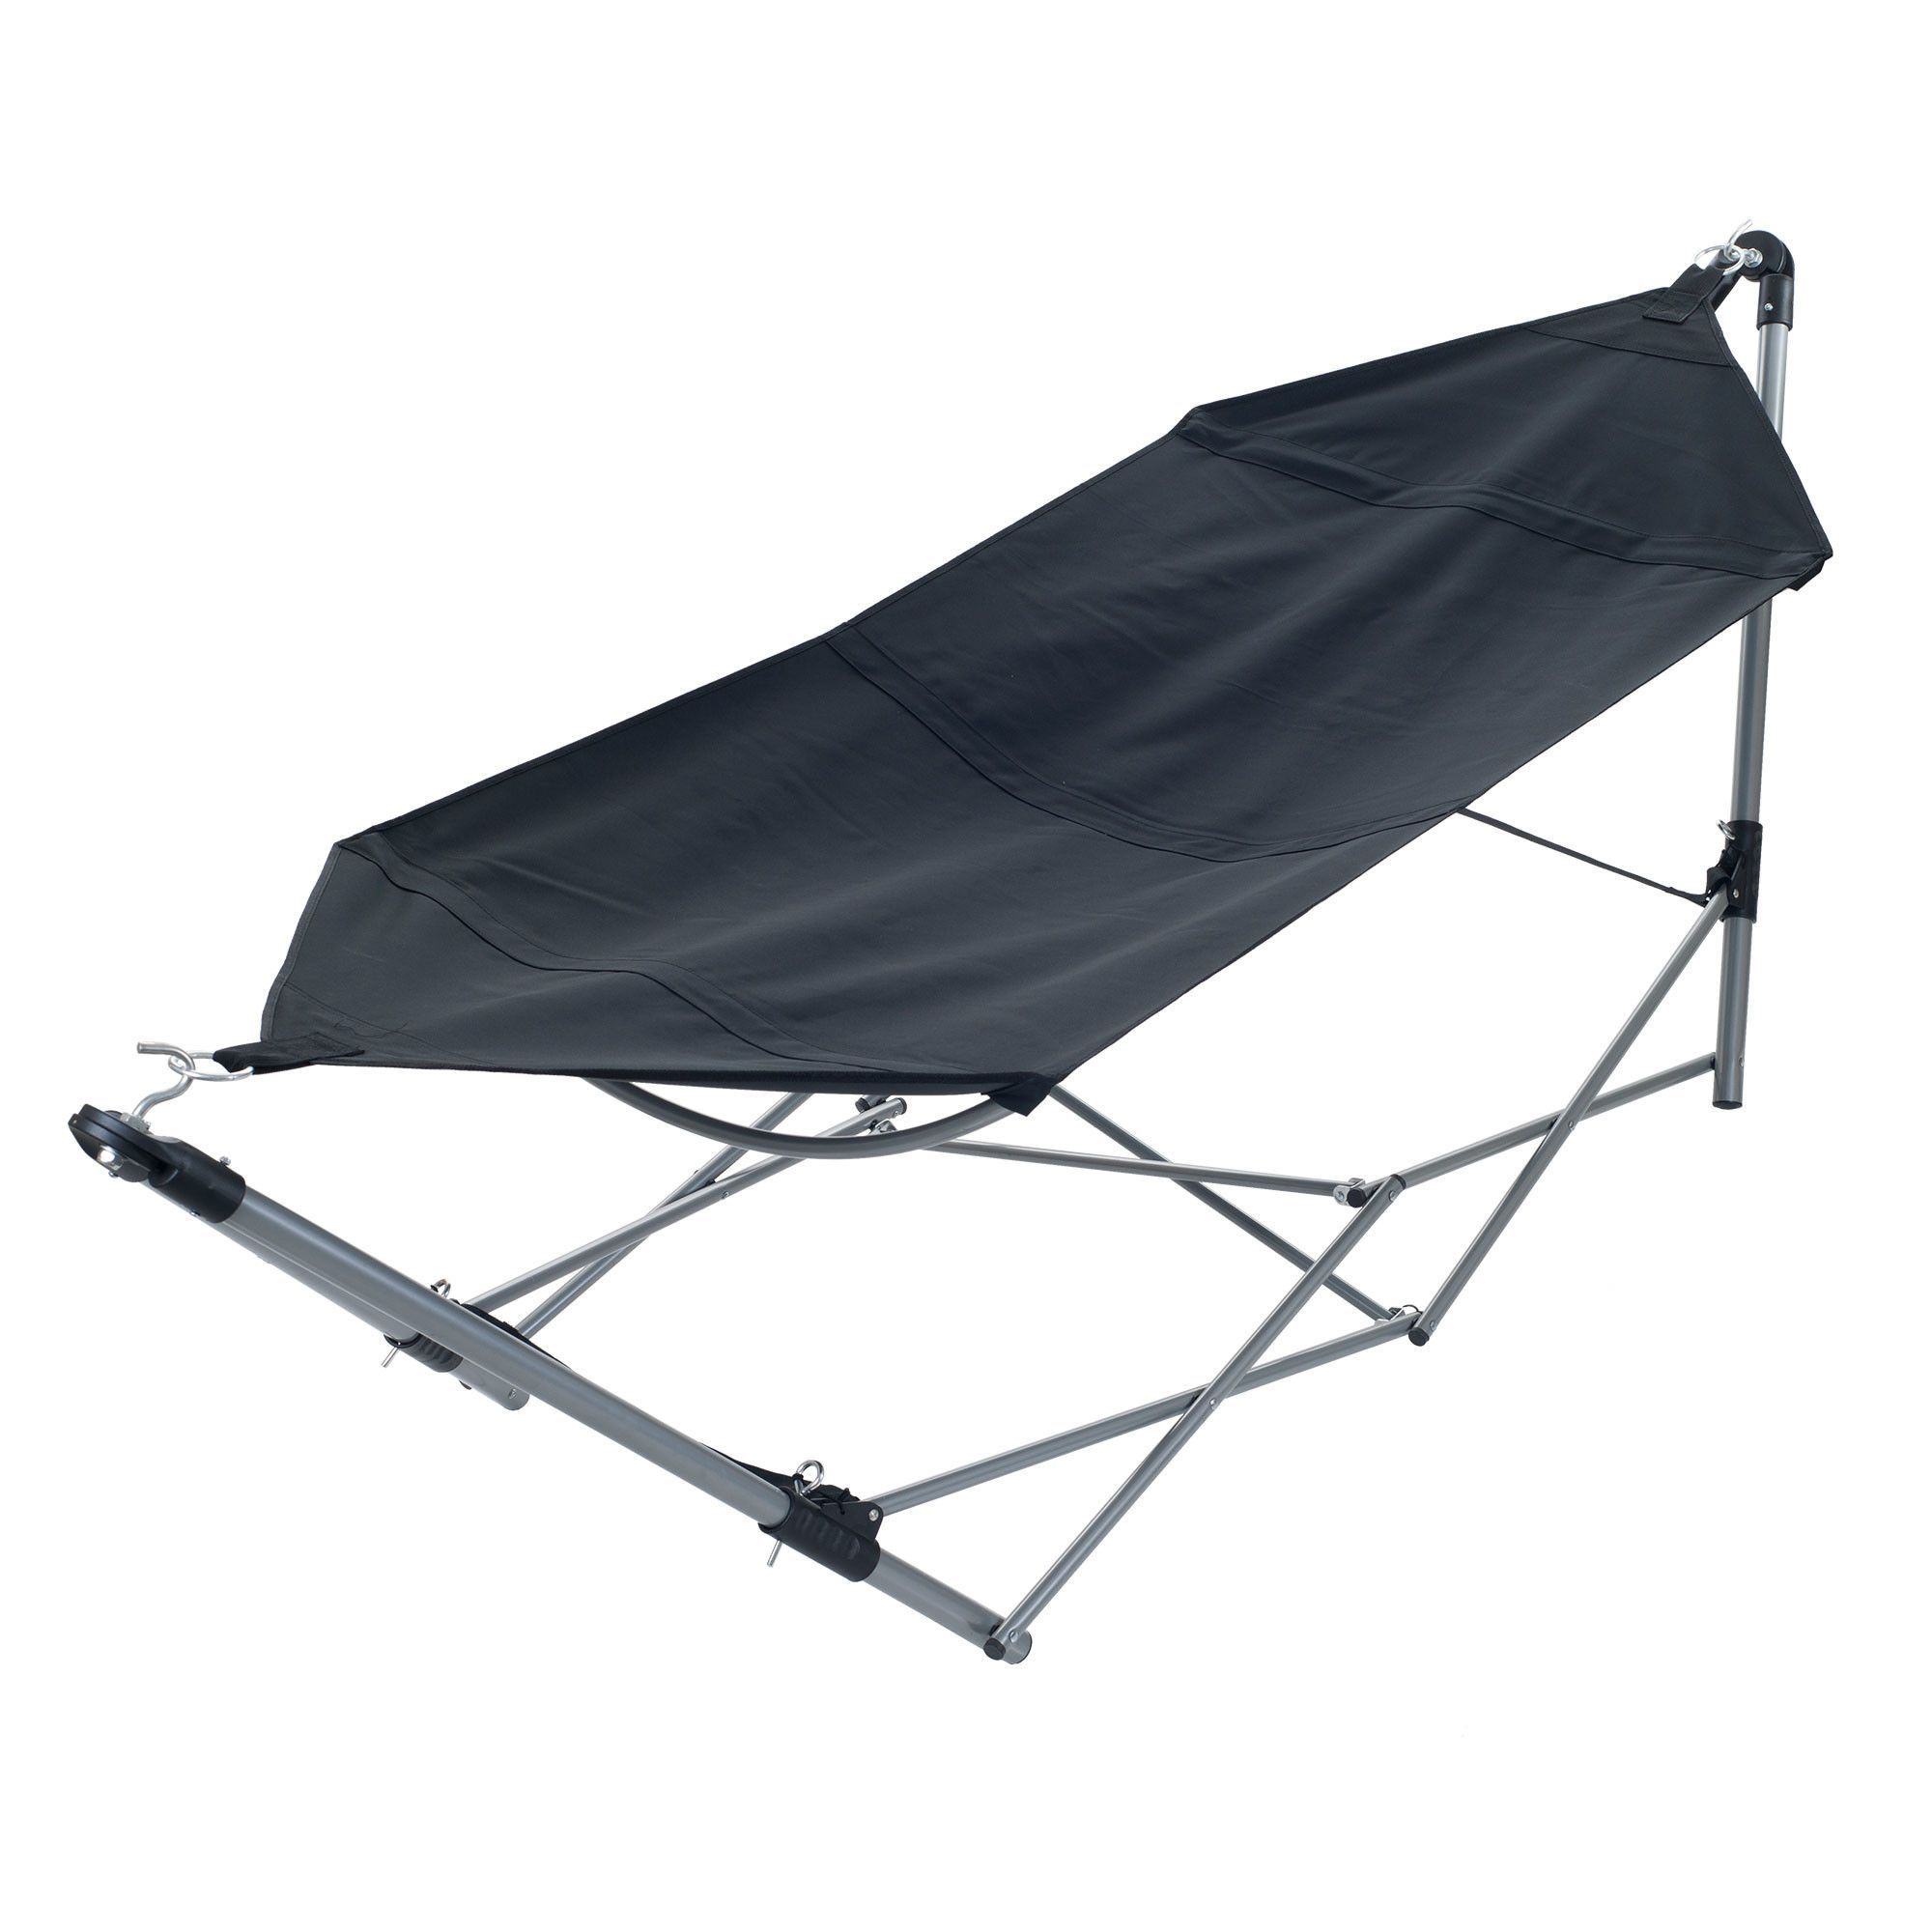 graco cat full alone pack cheap play baby n swing s amazon instructions lowes diy portable bed inside chair size faedaworkscom stand of and hammock